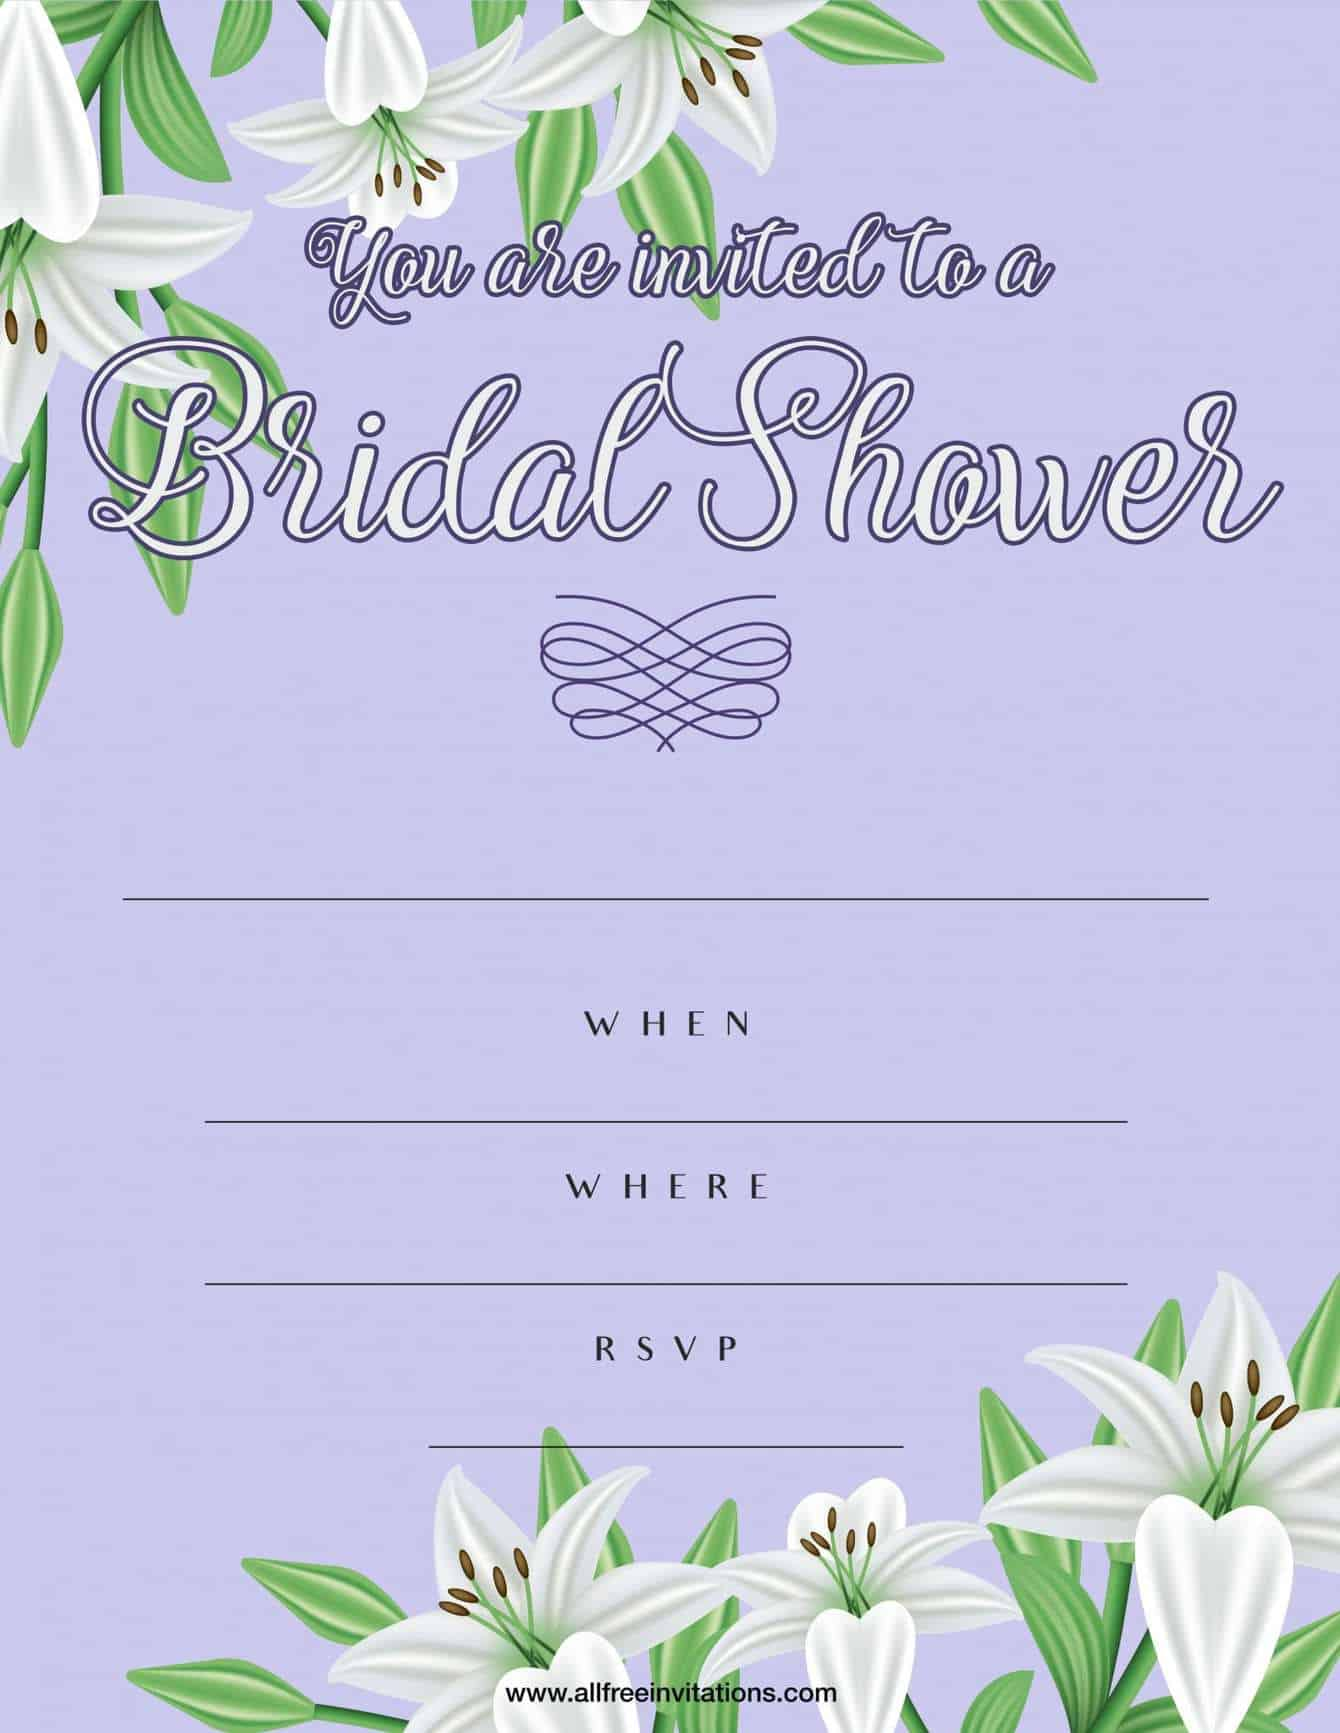 Bridal shower invitation purple and white floral design